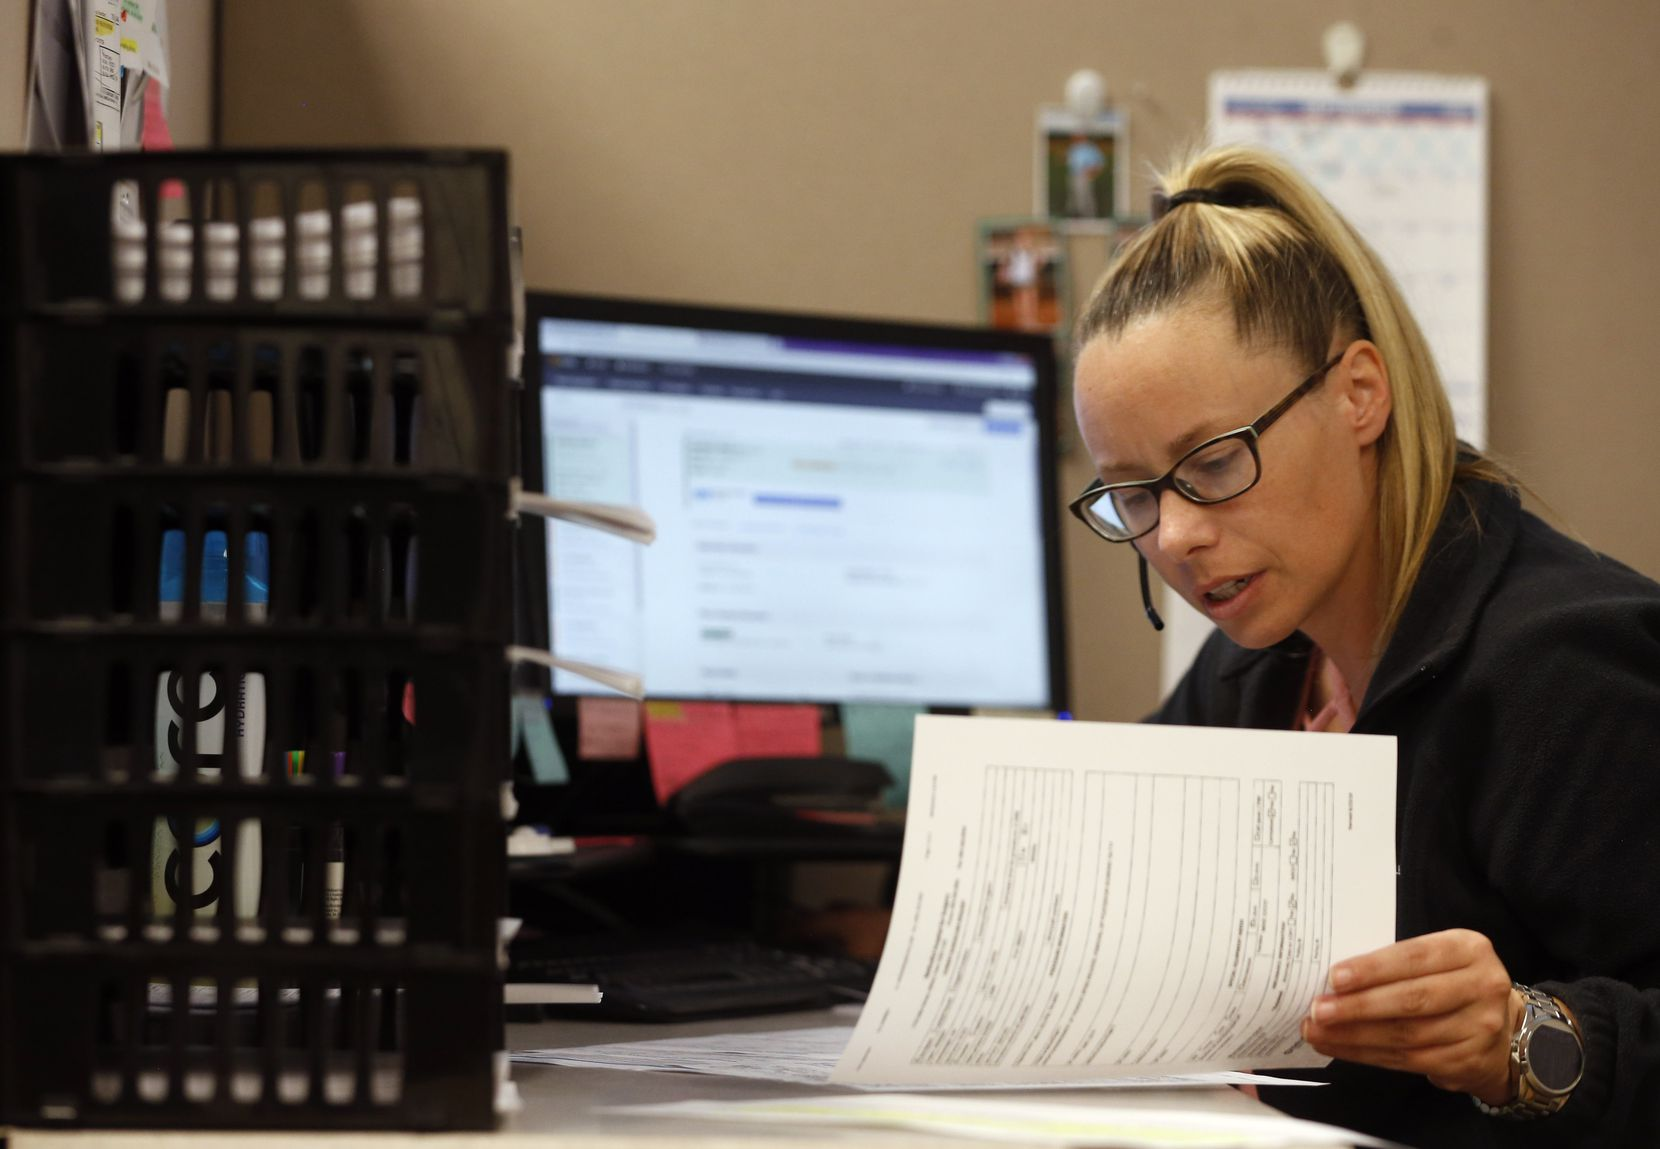 Jessica Hefley works on scheduling in the central scheduling office at Methodist Hospital for Surgery in Addison.